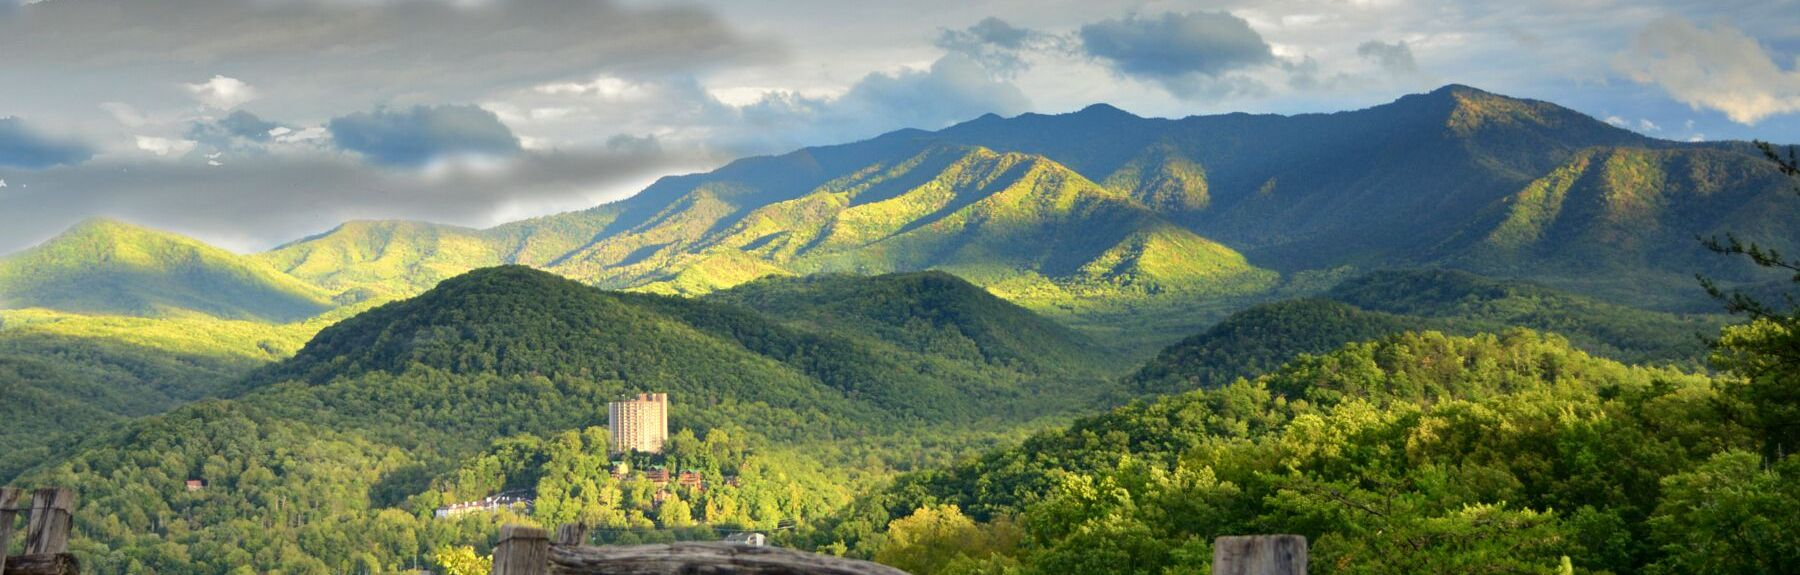 Gatlinburg, Tennessee, United States of America